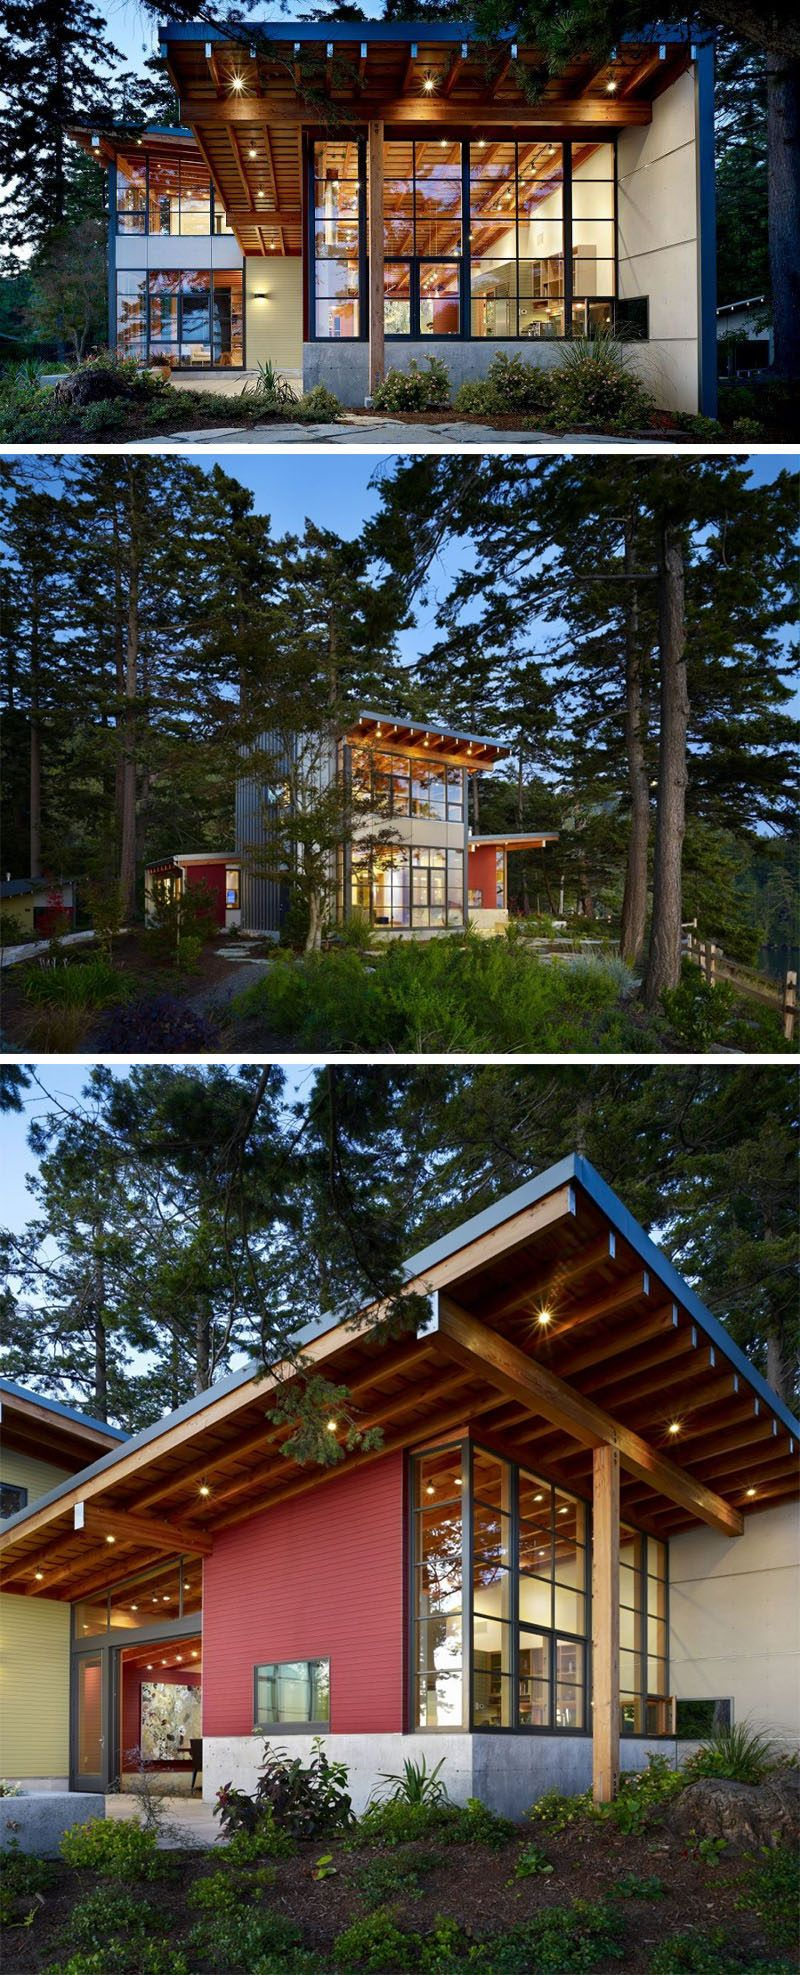 20 Awesome Examples Of Pacific Northwest Architecture